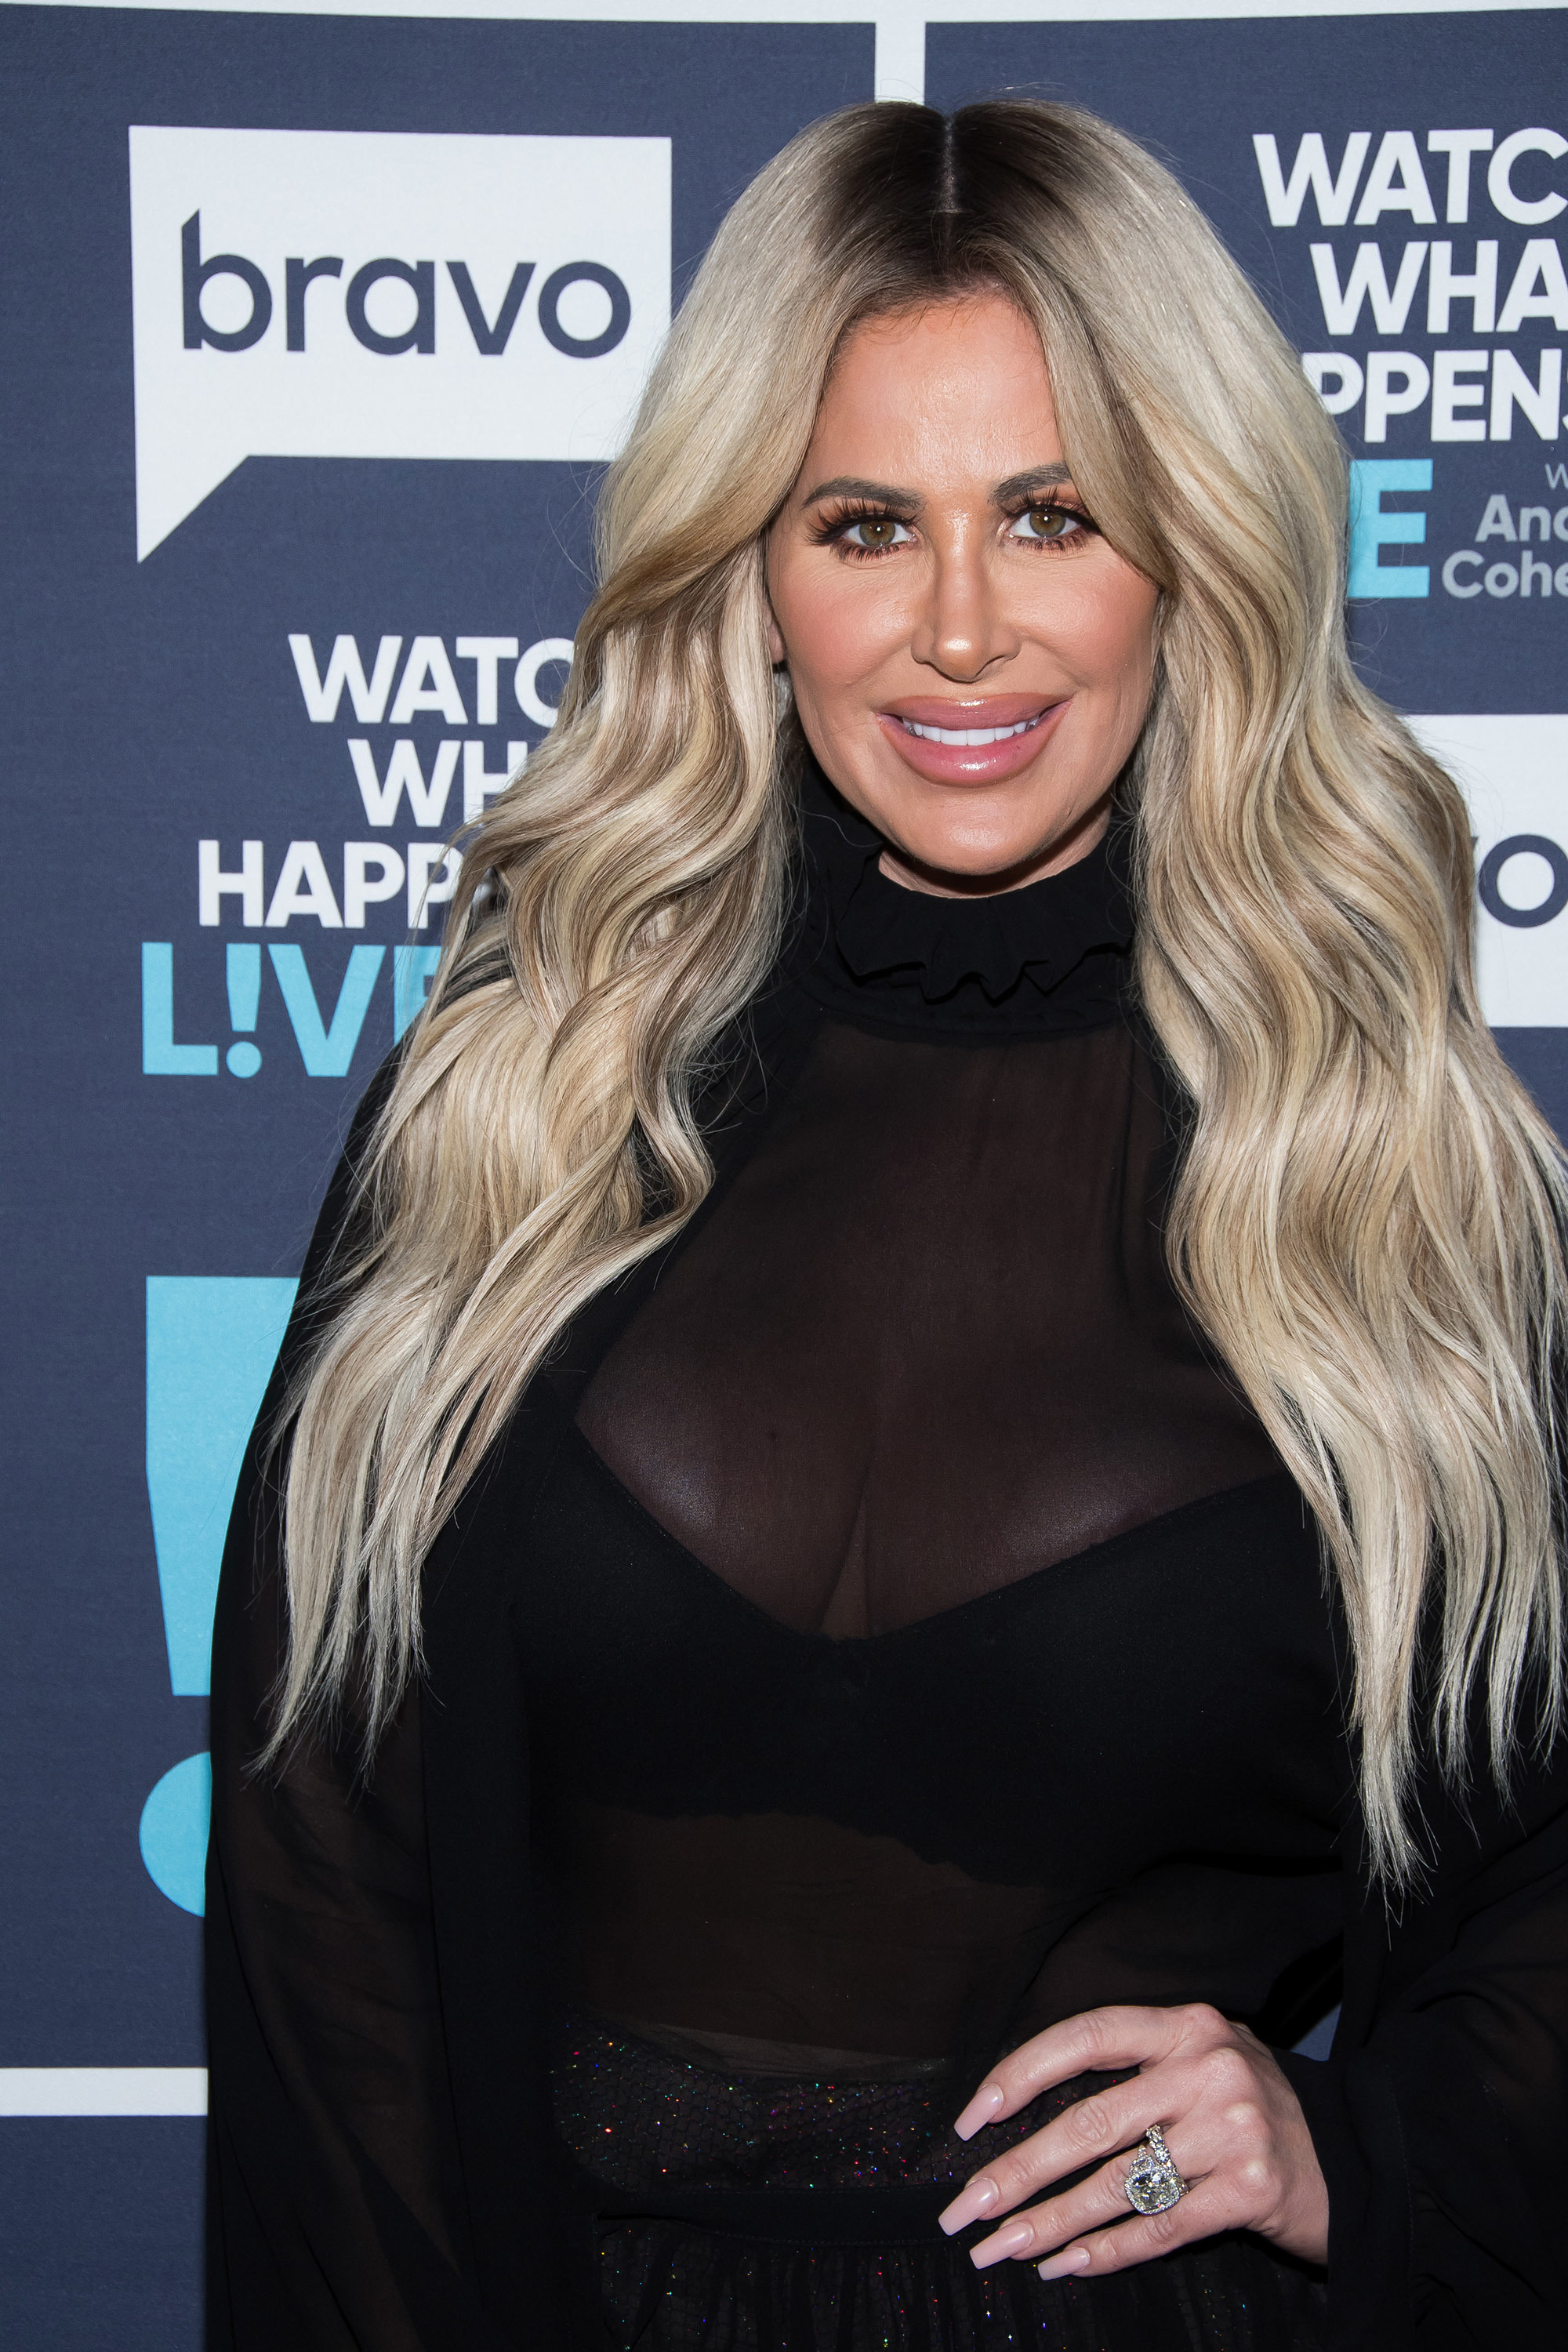 """Kim Zolciak Biermann poses outside the """"Watch What Happens Live With Andy Cohen"""" studio in New York City on Dec. 17, 2017."""